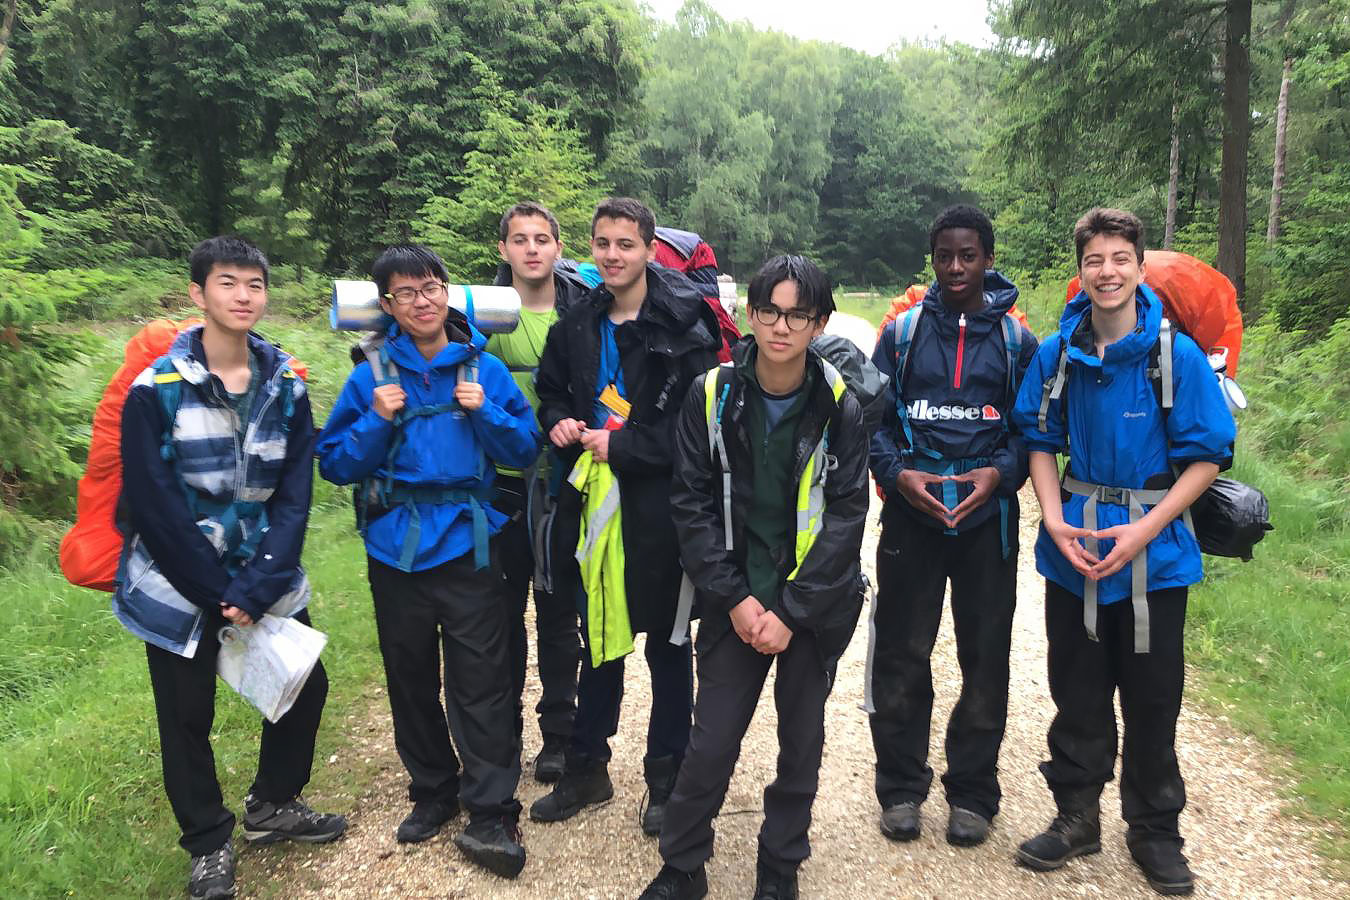 Duke of Edinburgh Silver Qualifying Expedition to the New Forest